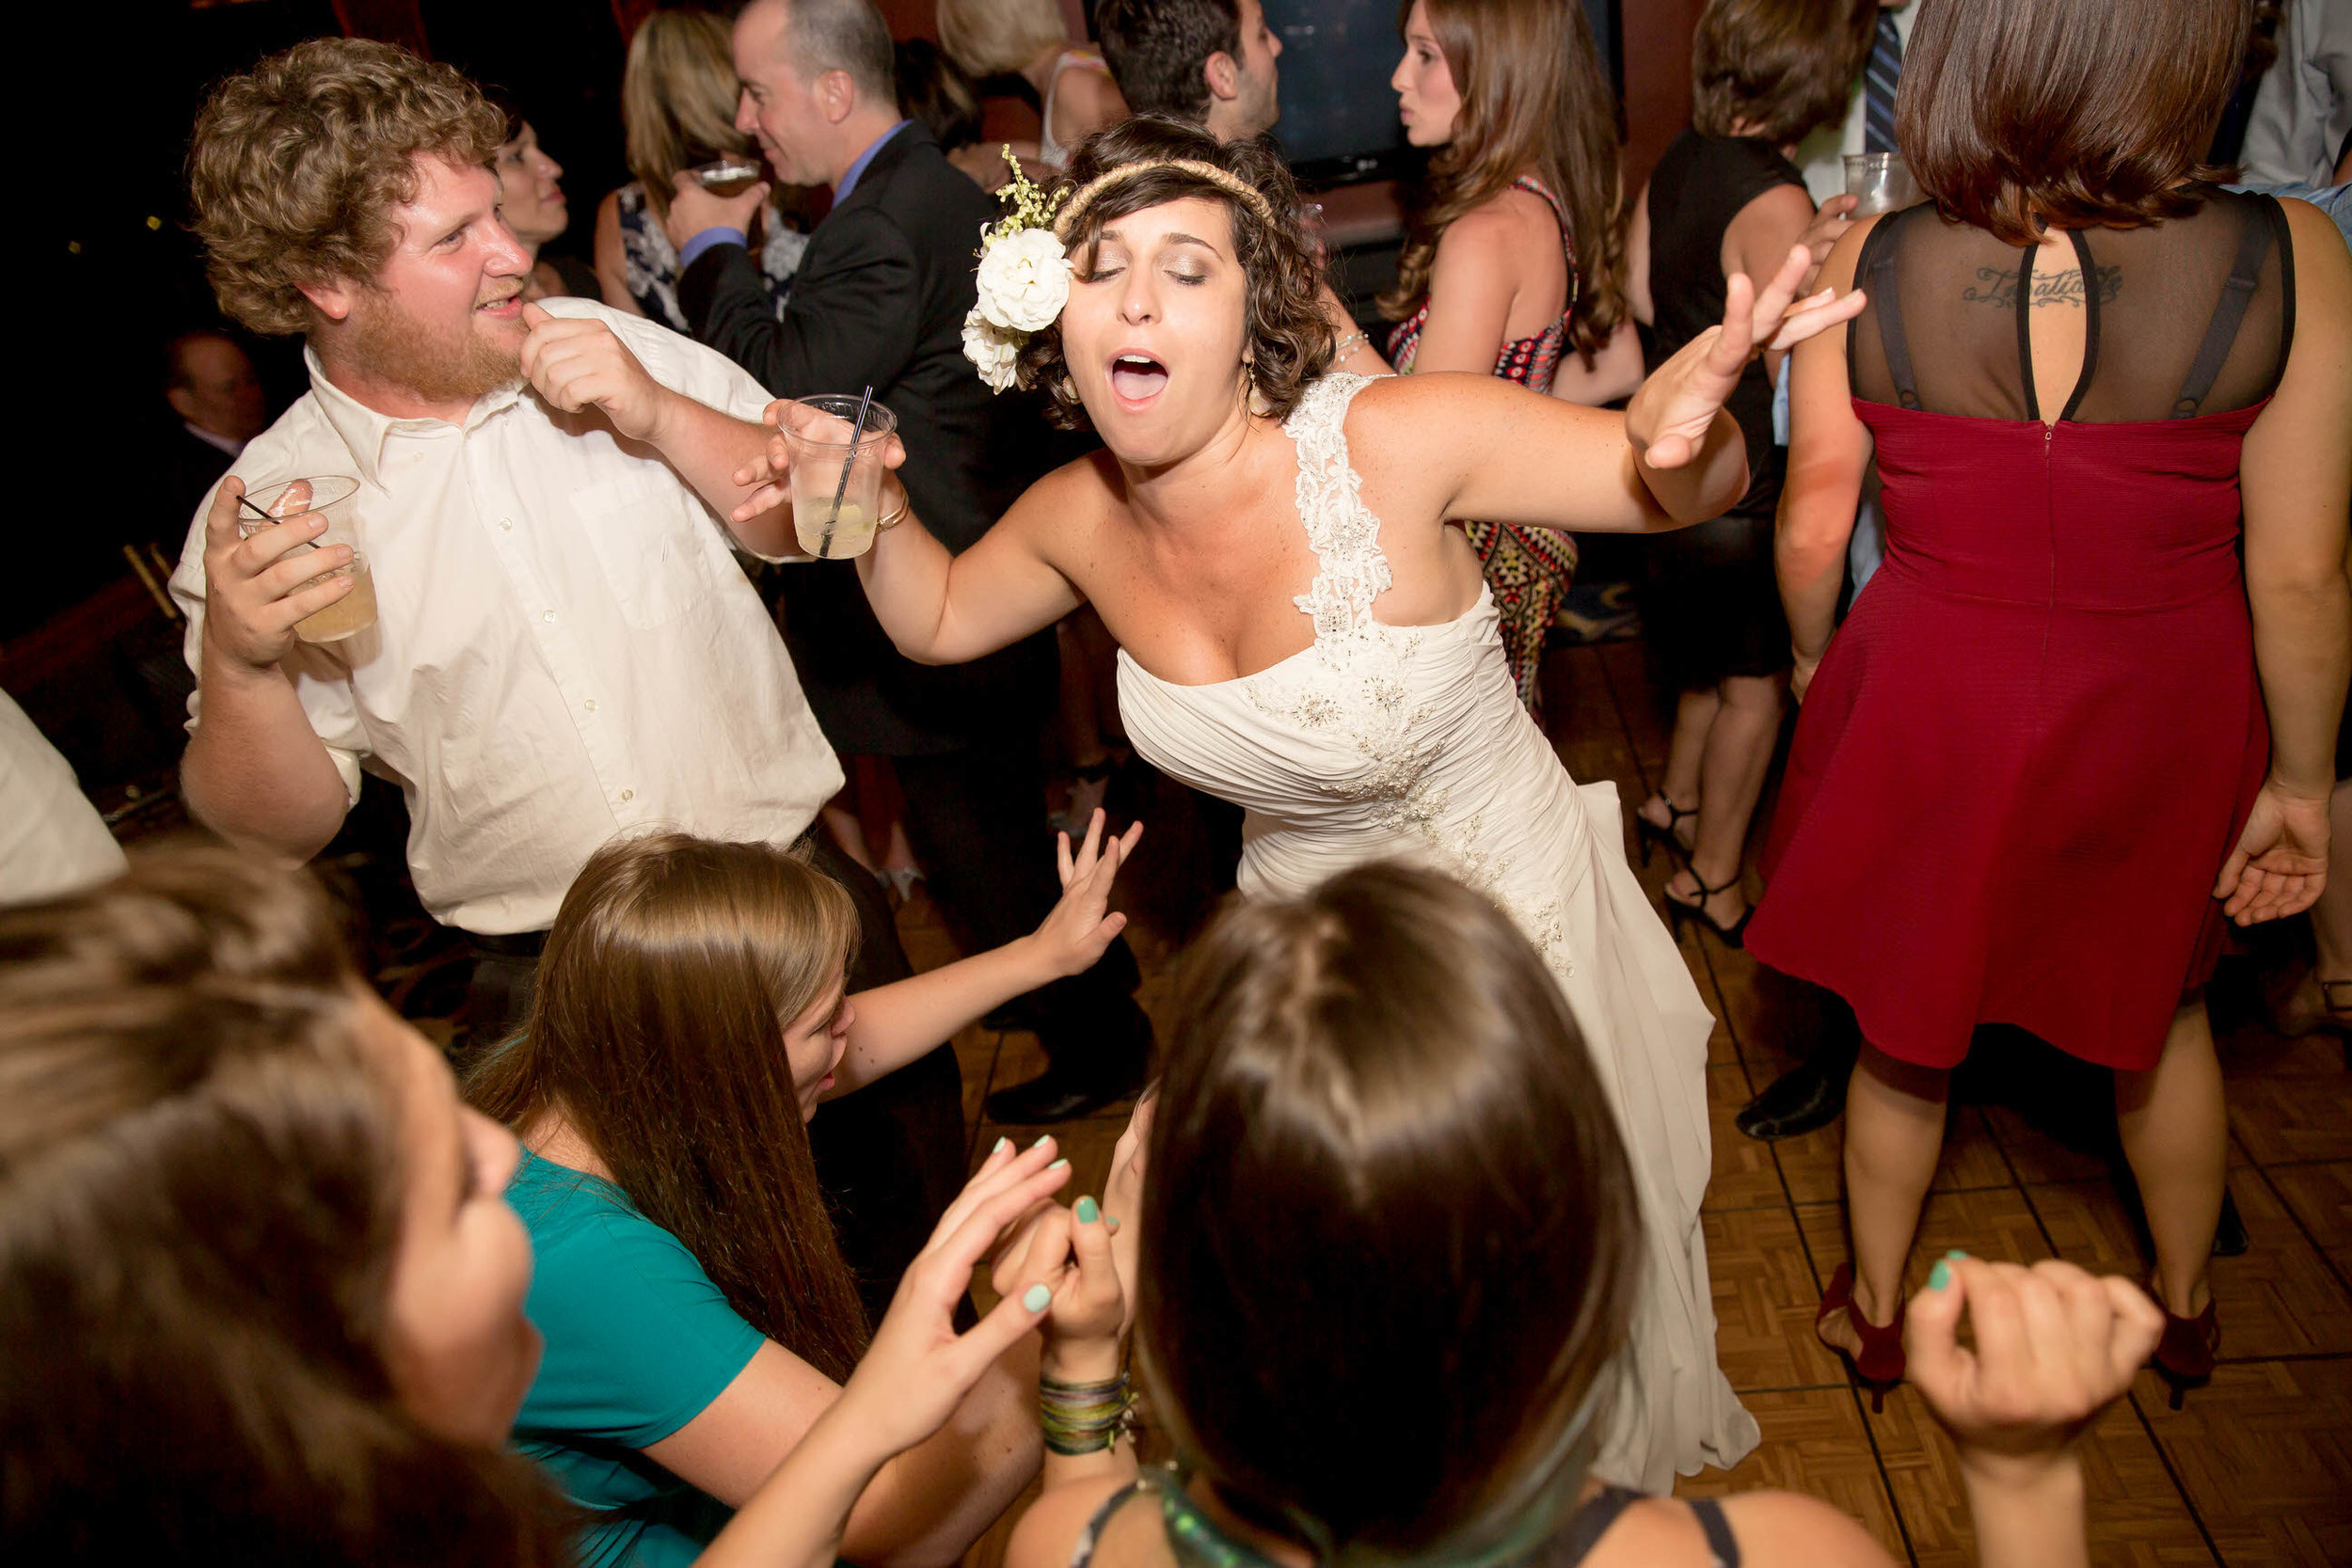 bride-partying-dance-tiny-house--photo.jpg